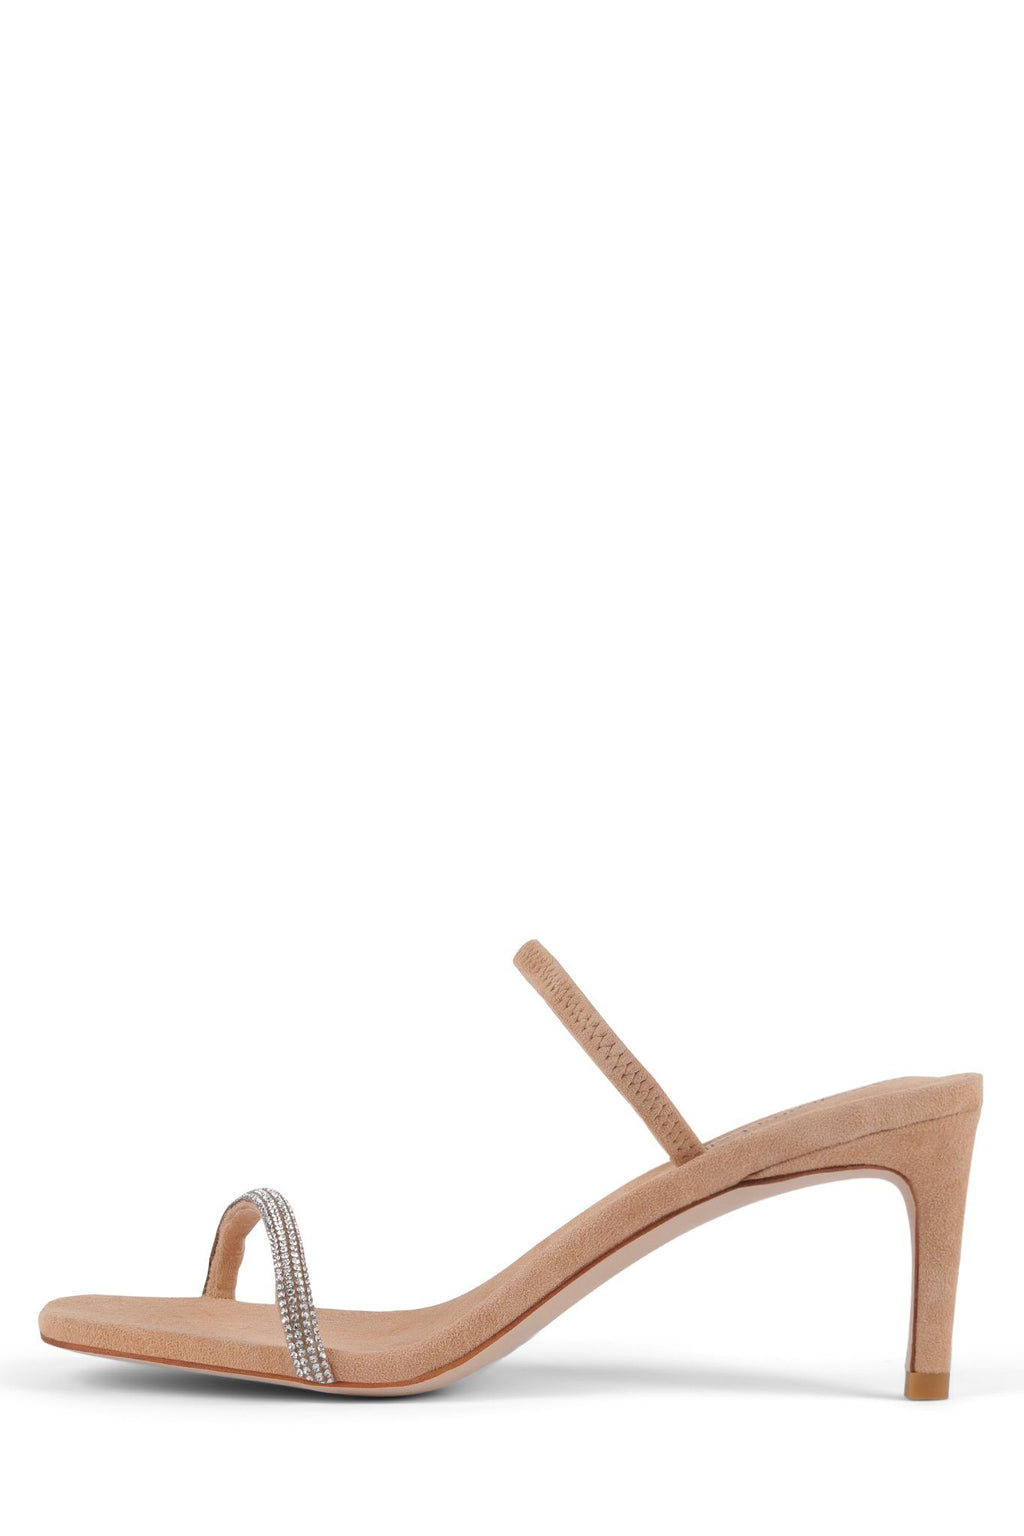 HERA-HJS Heeled Sandal Jeffrey Campbell Nude Suede Champagne 6